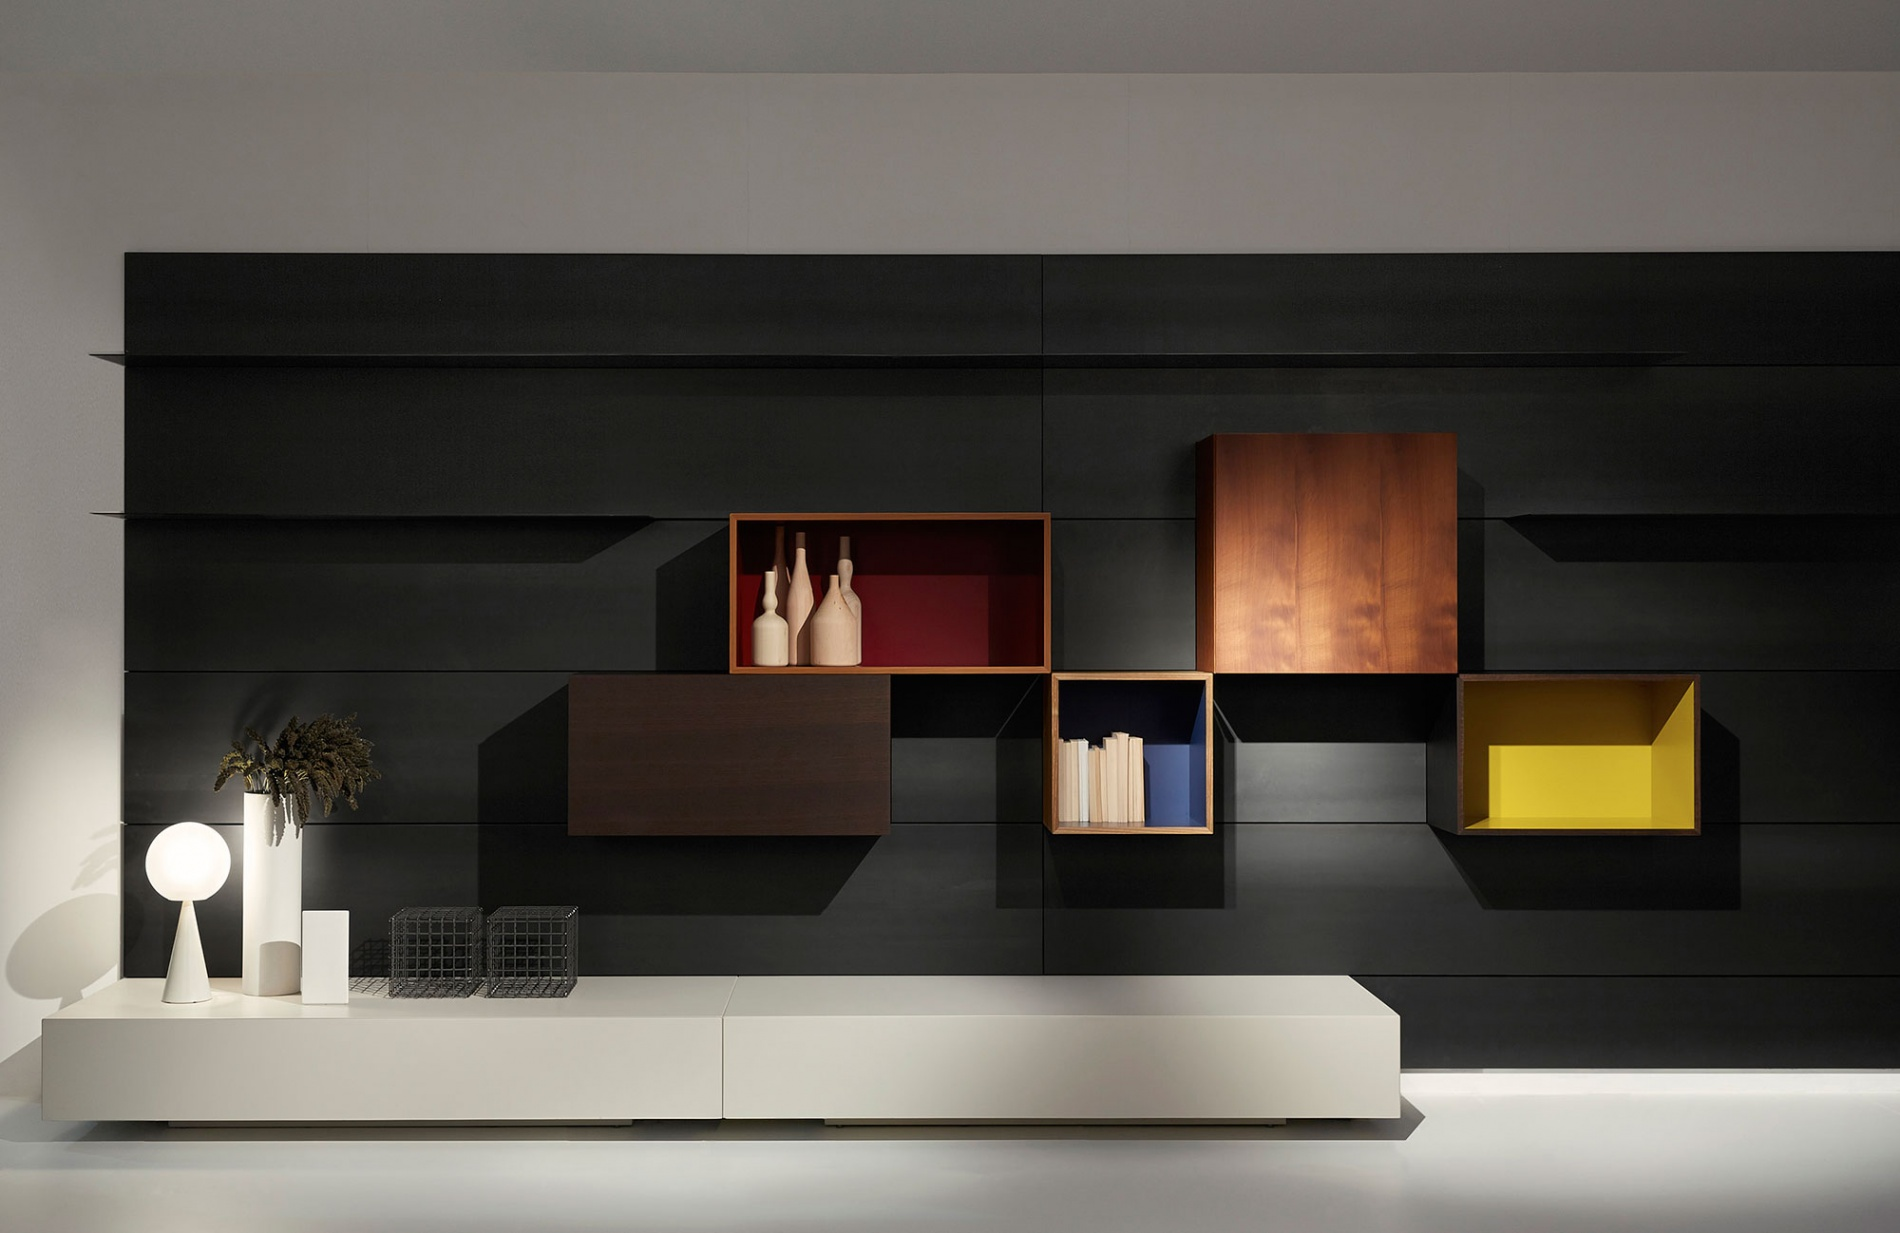 porro spa news events new composition modern 2014. Black Bedroom Furniture Sets. Home Design Ideas